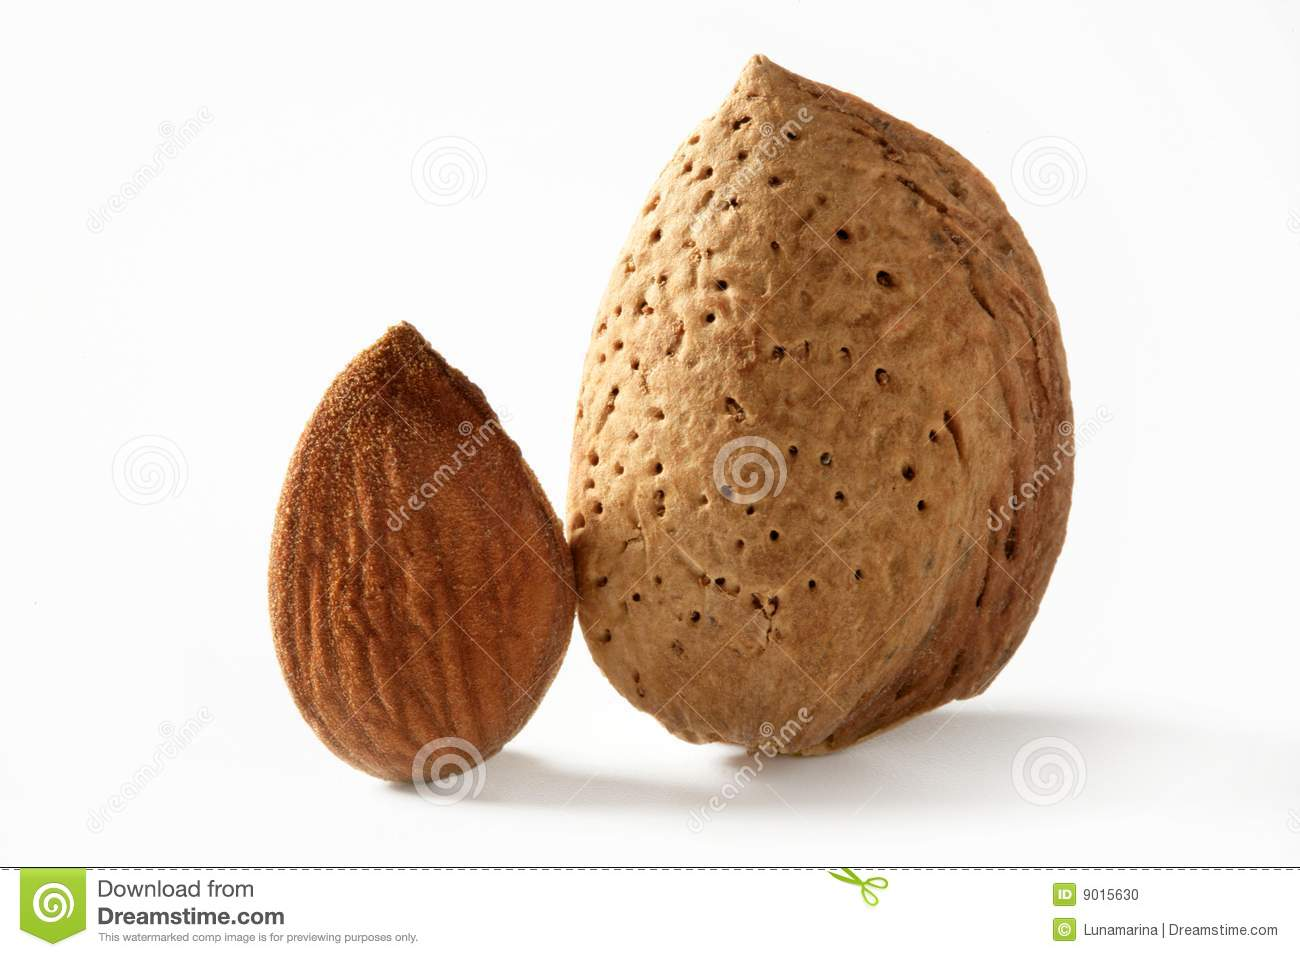 almond divorced singles personals There's no doubt about it the way people connect and find potential love interests has evolved quite a bit over the last decade online dating sites, as well as dating apps, are catered to.